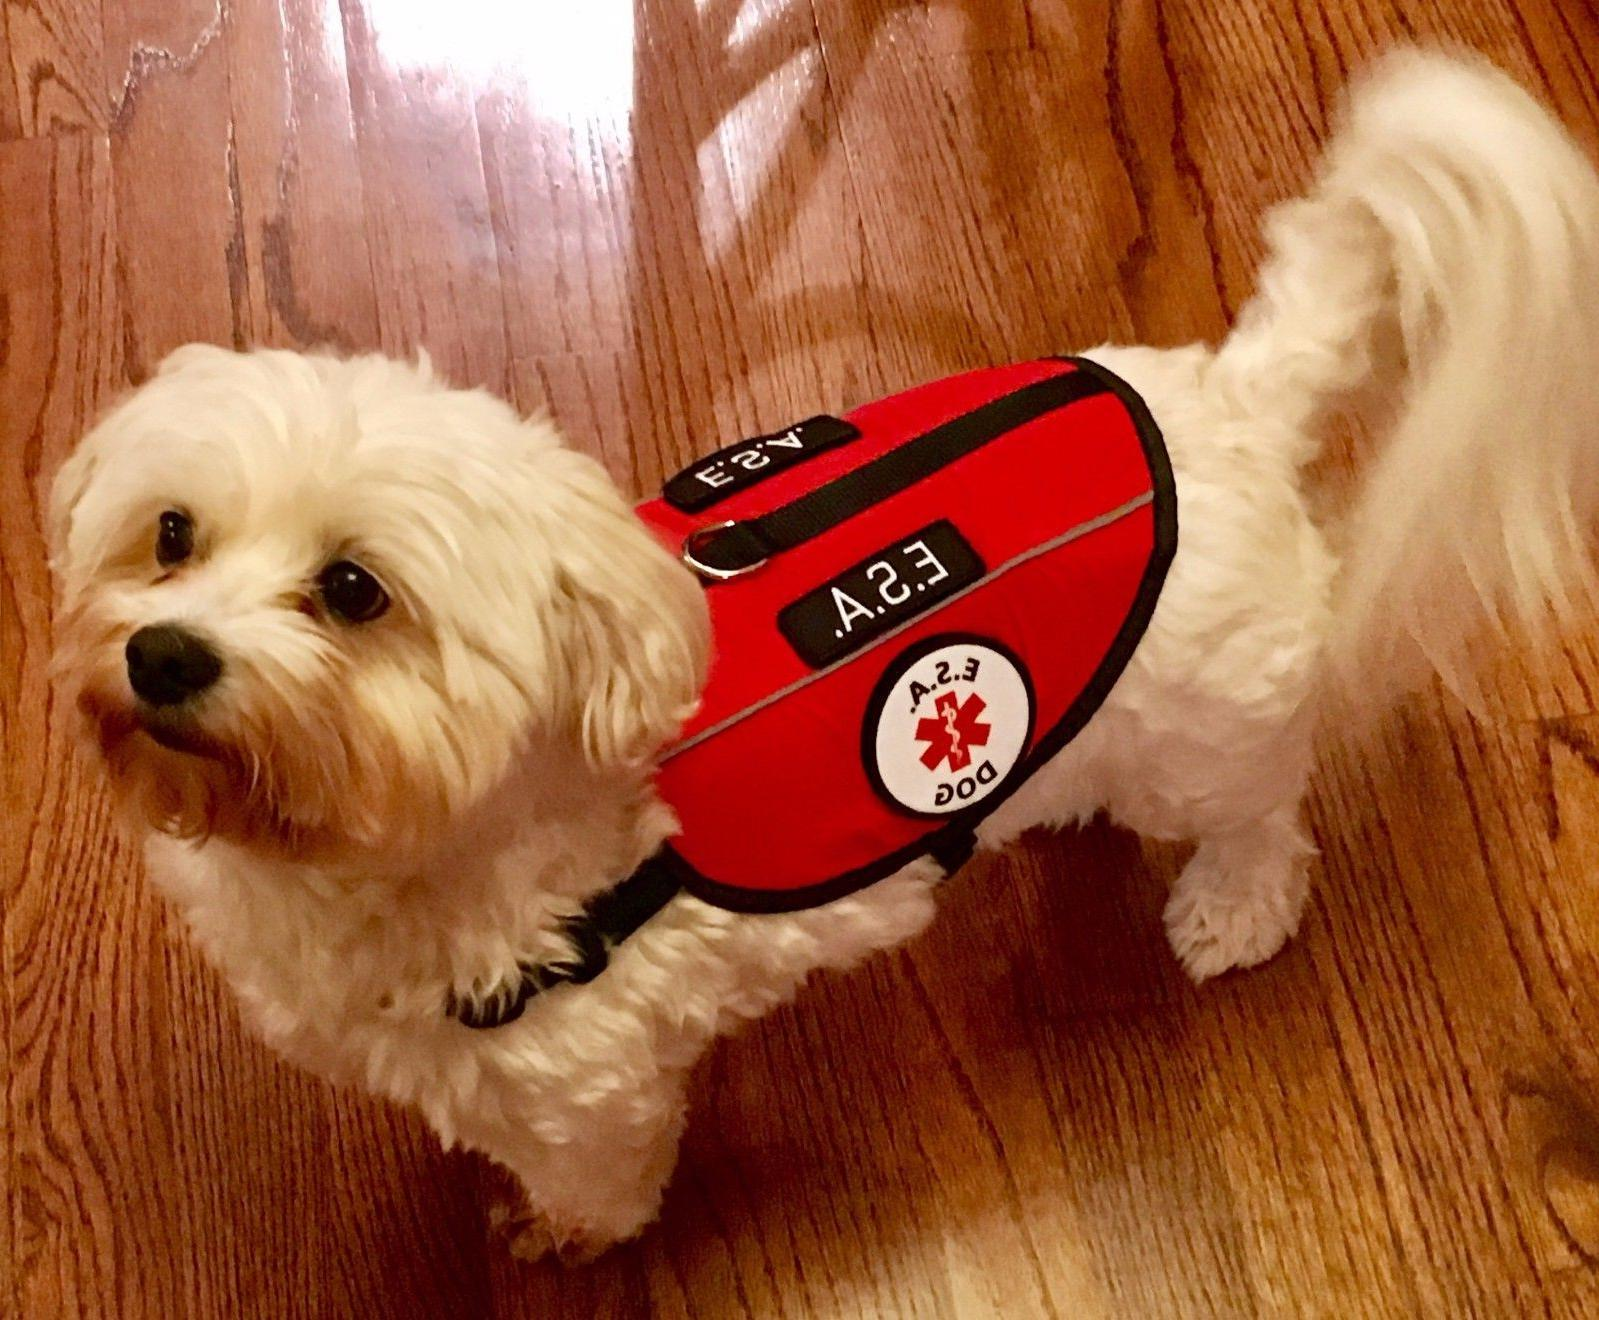 ALL ACCESS CANINE™ Emotional Support Animal ESA Service Do